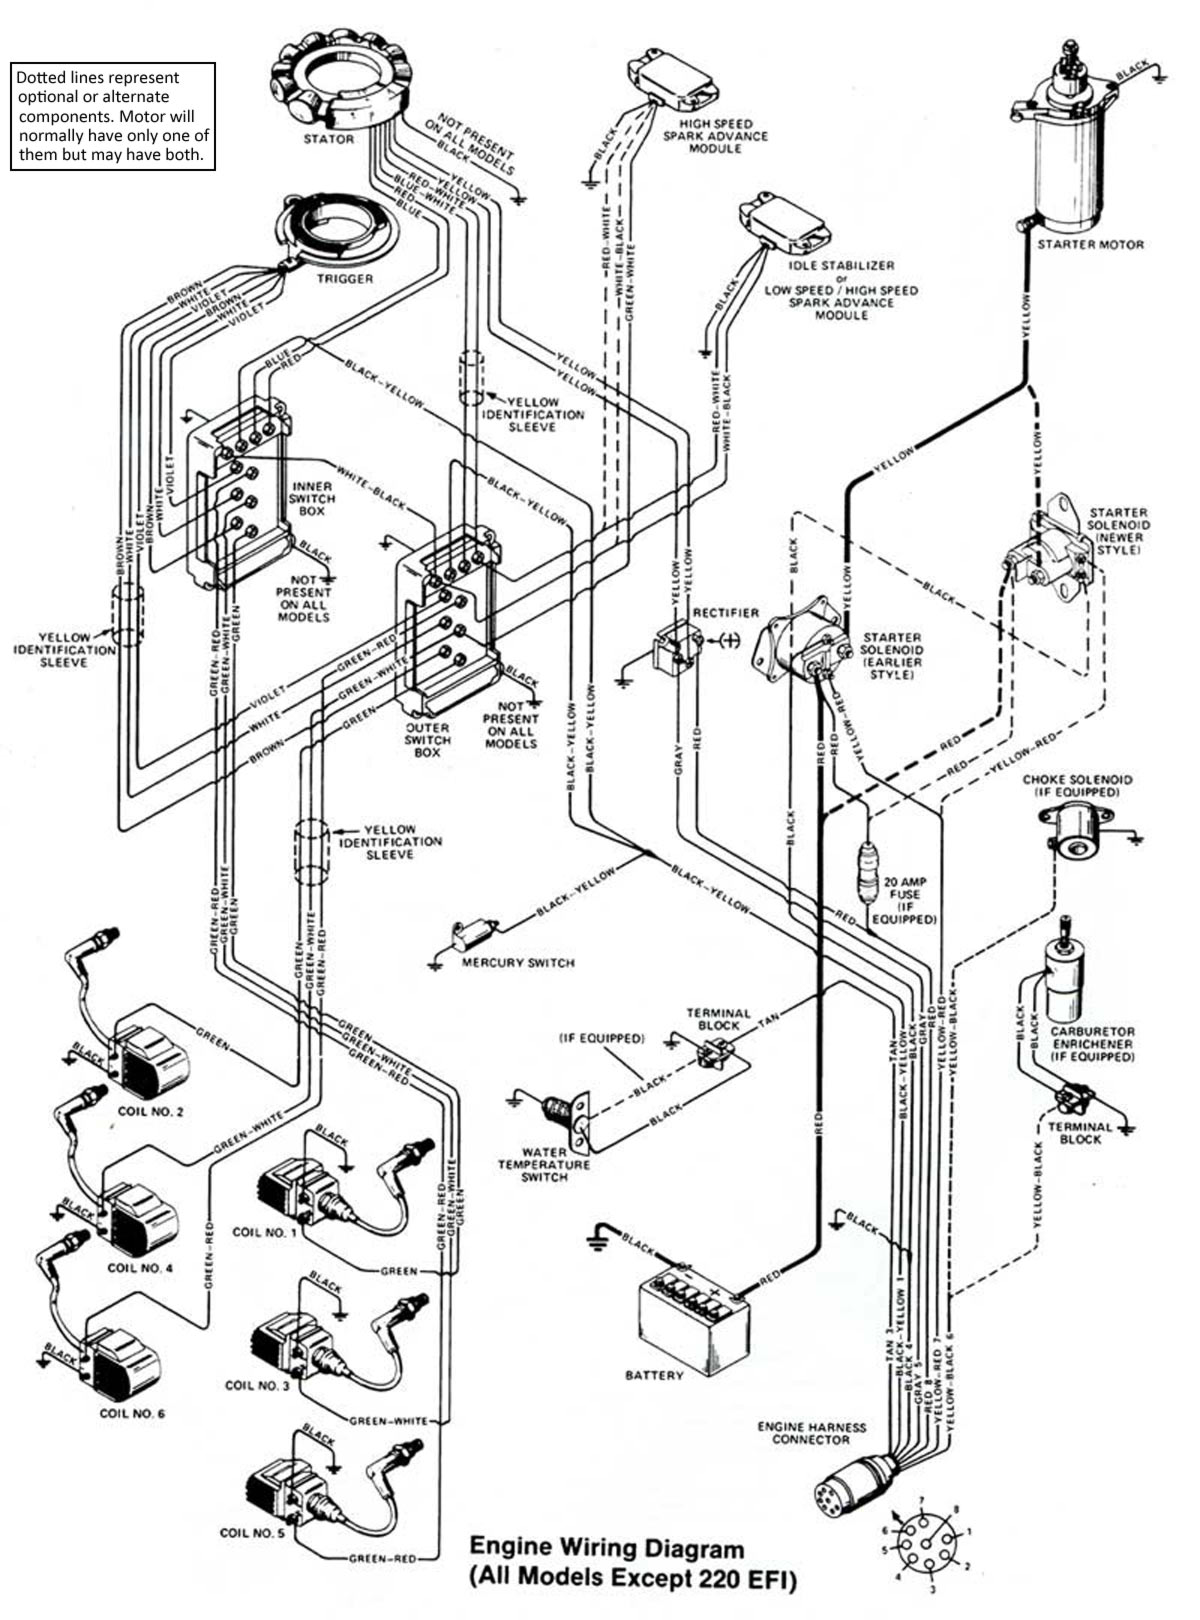 Mercury Outboard Wiring Diagrams Mastertech Marin Drawing Harness Connection Please